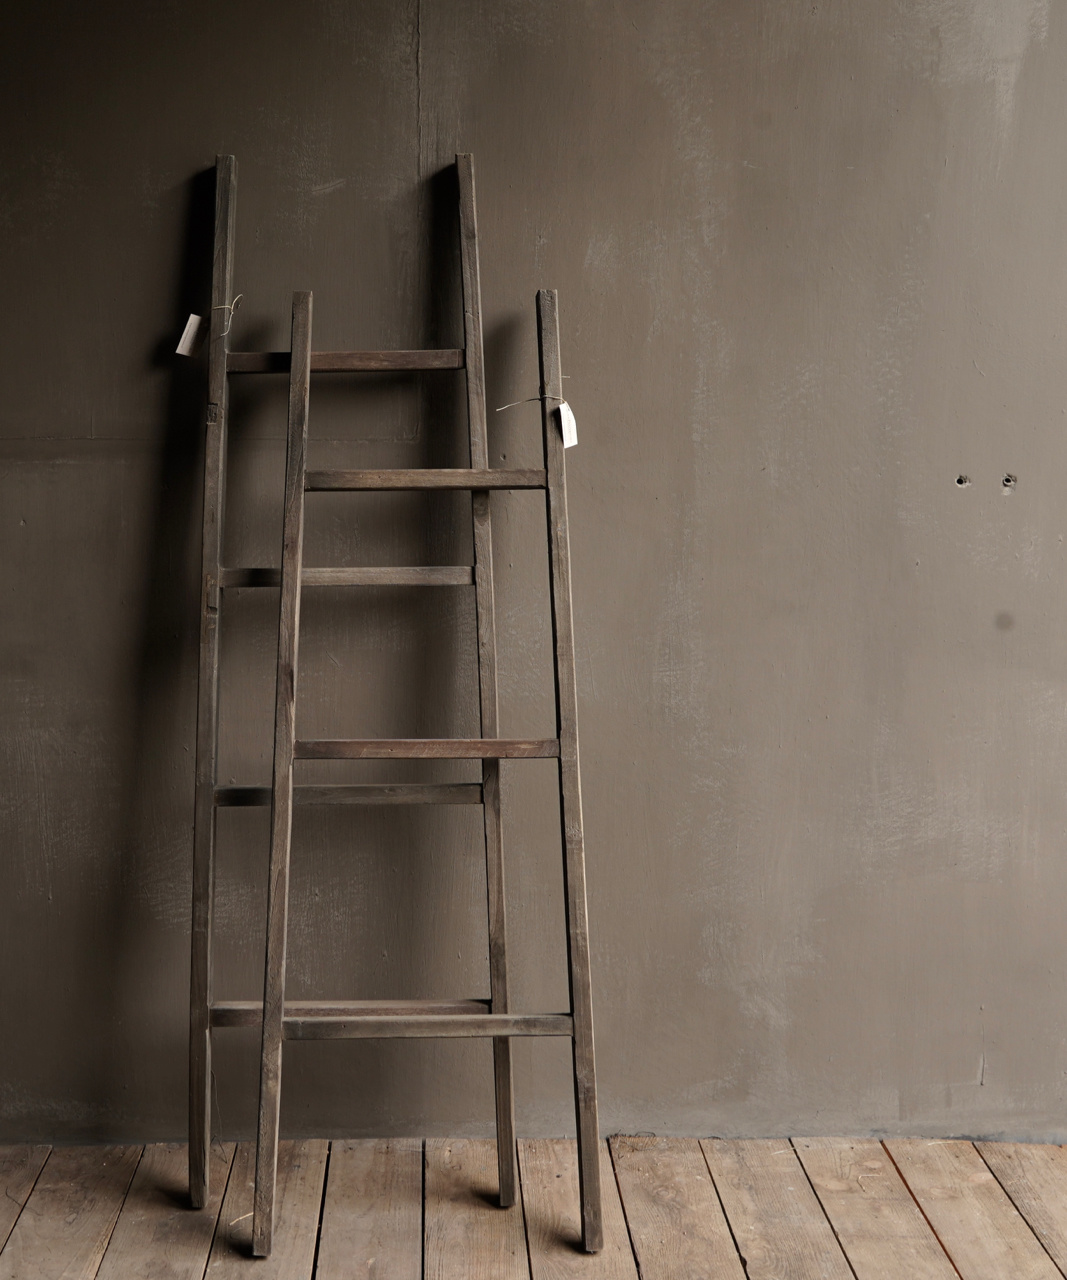 Stair / ladder made of old wood-4